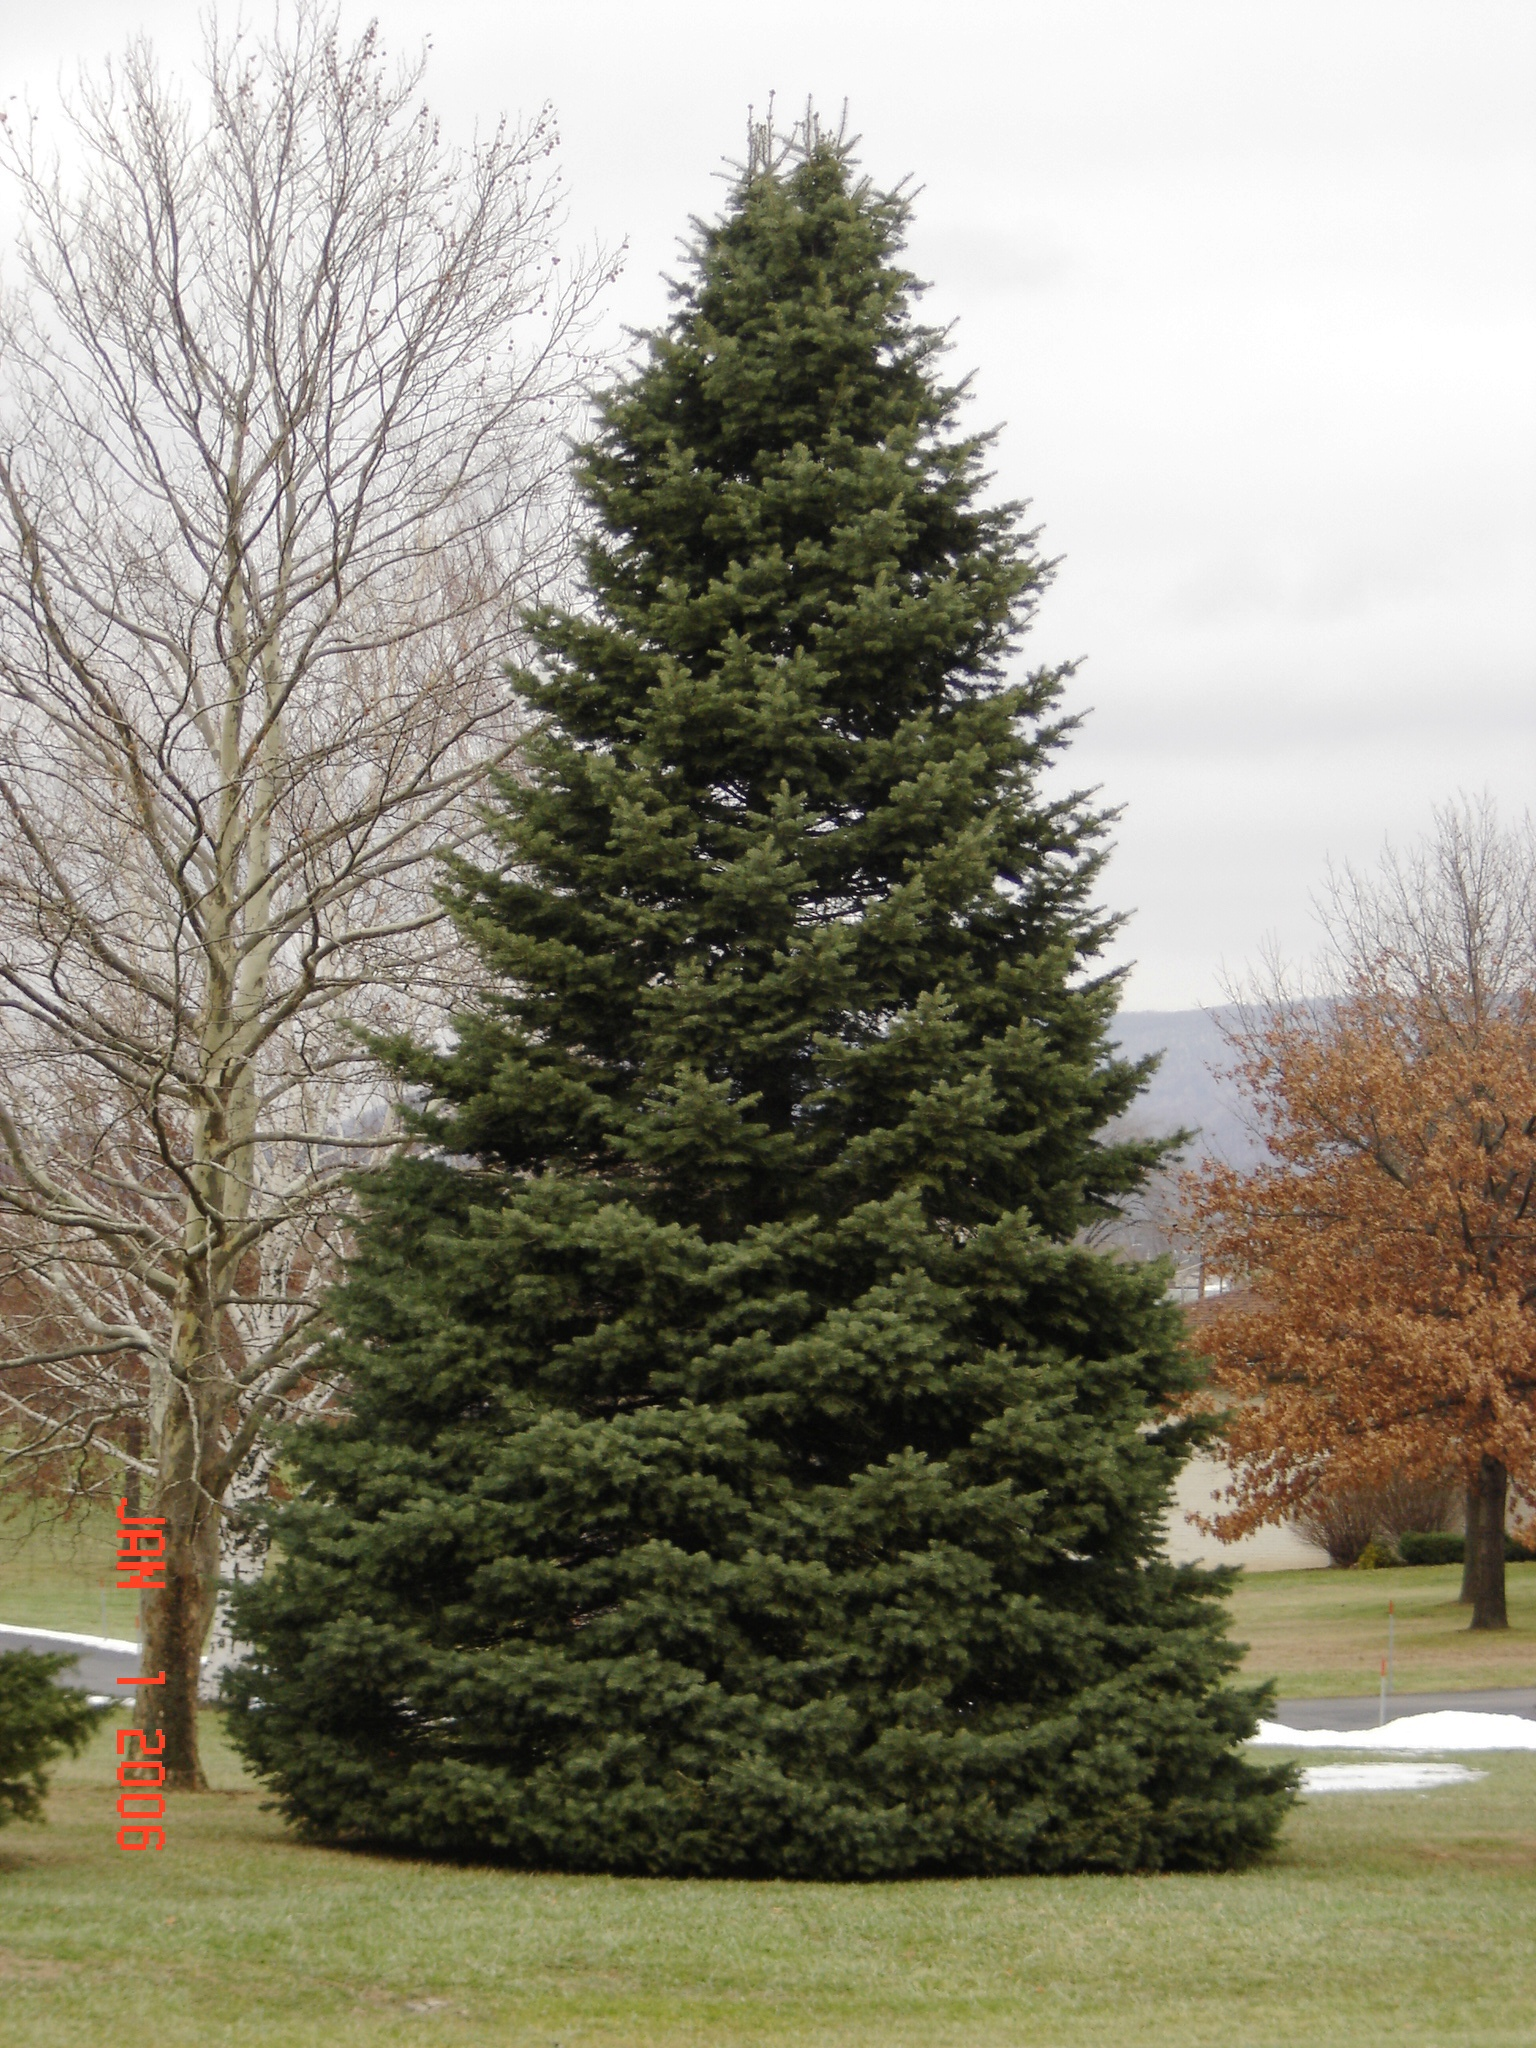 How Many Types Of Christmas Trees Are There